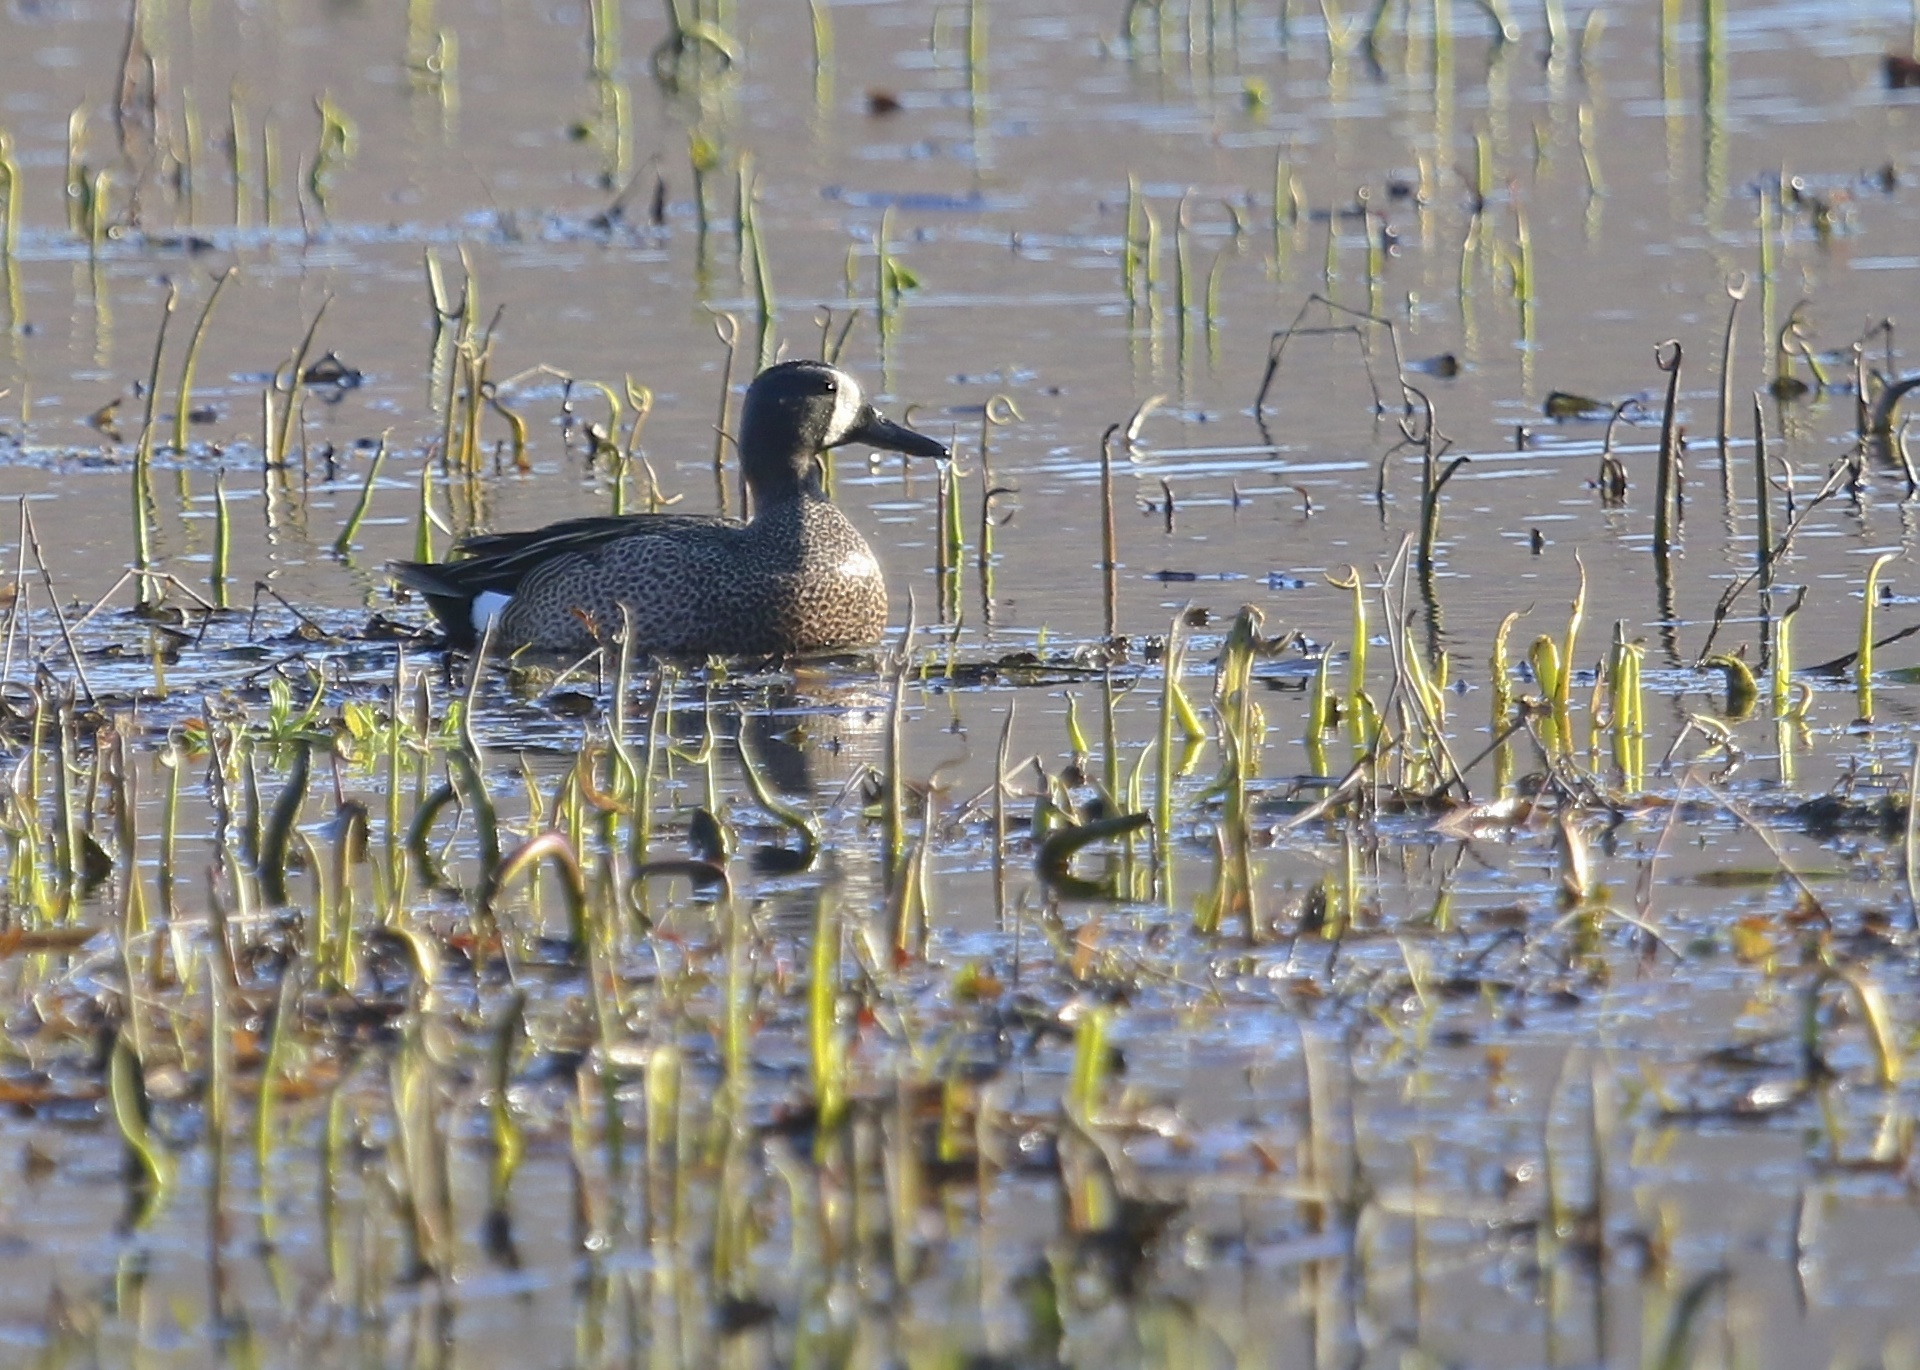 Blue-winged Teals have been a bird I've struggled to get photos of in the past, but this year I've gotten close to a few. Bashakill WMA, 4/24/14.